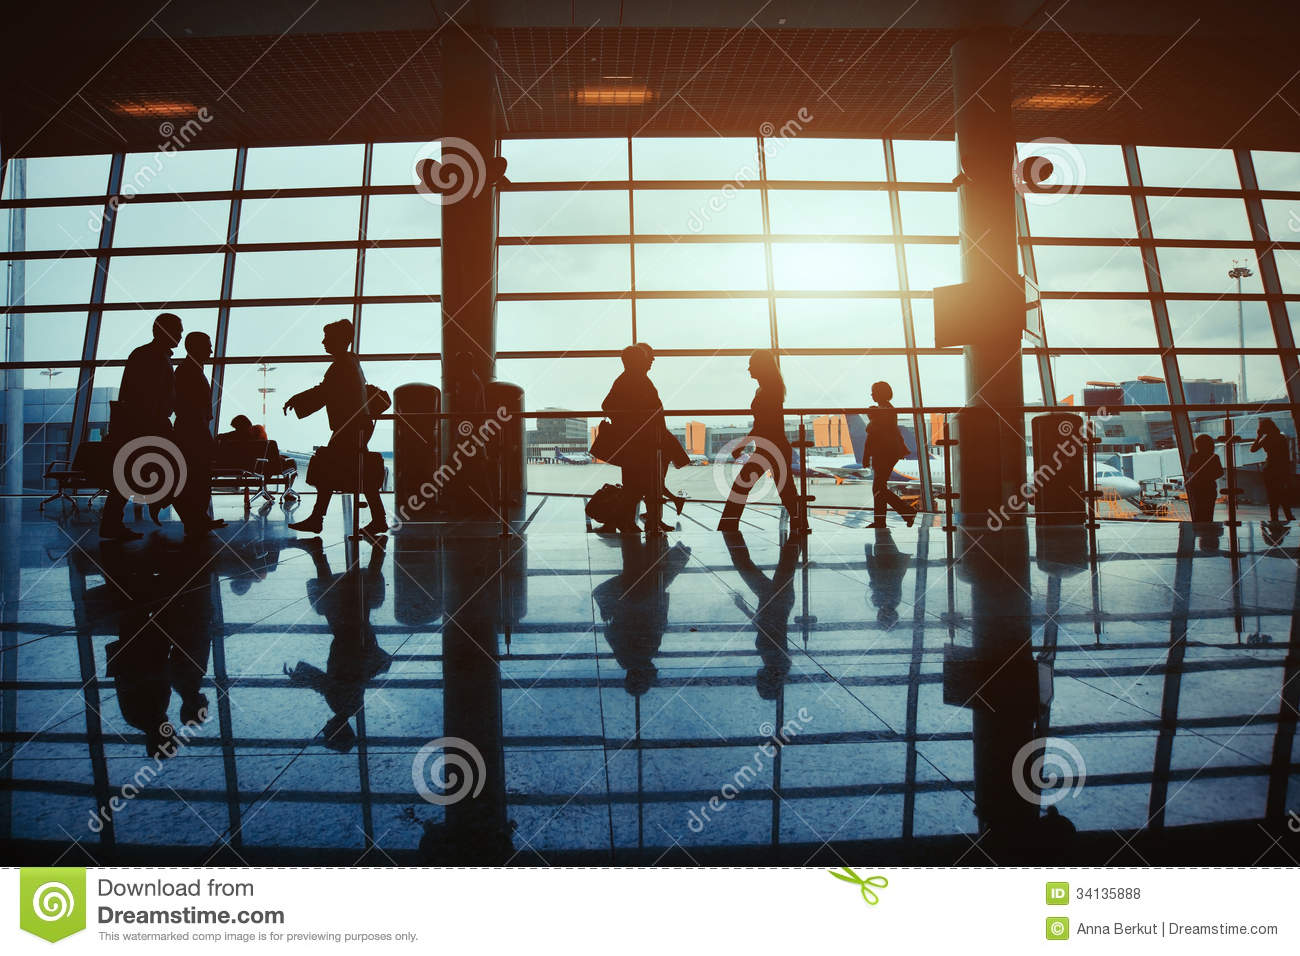 Free Images Traveling People Airport Bridge Business: Airport Royalty Free Stock Photos